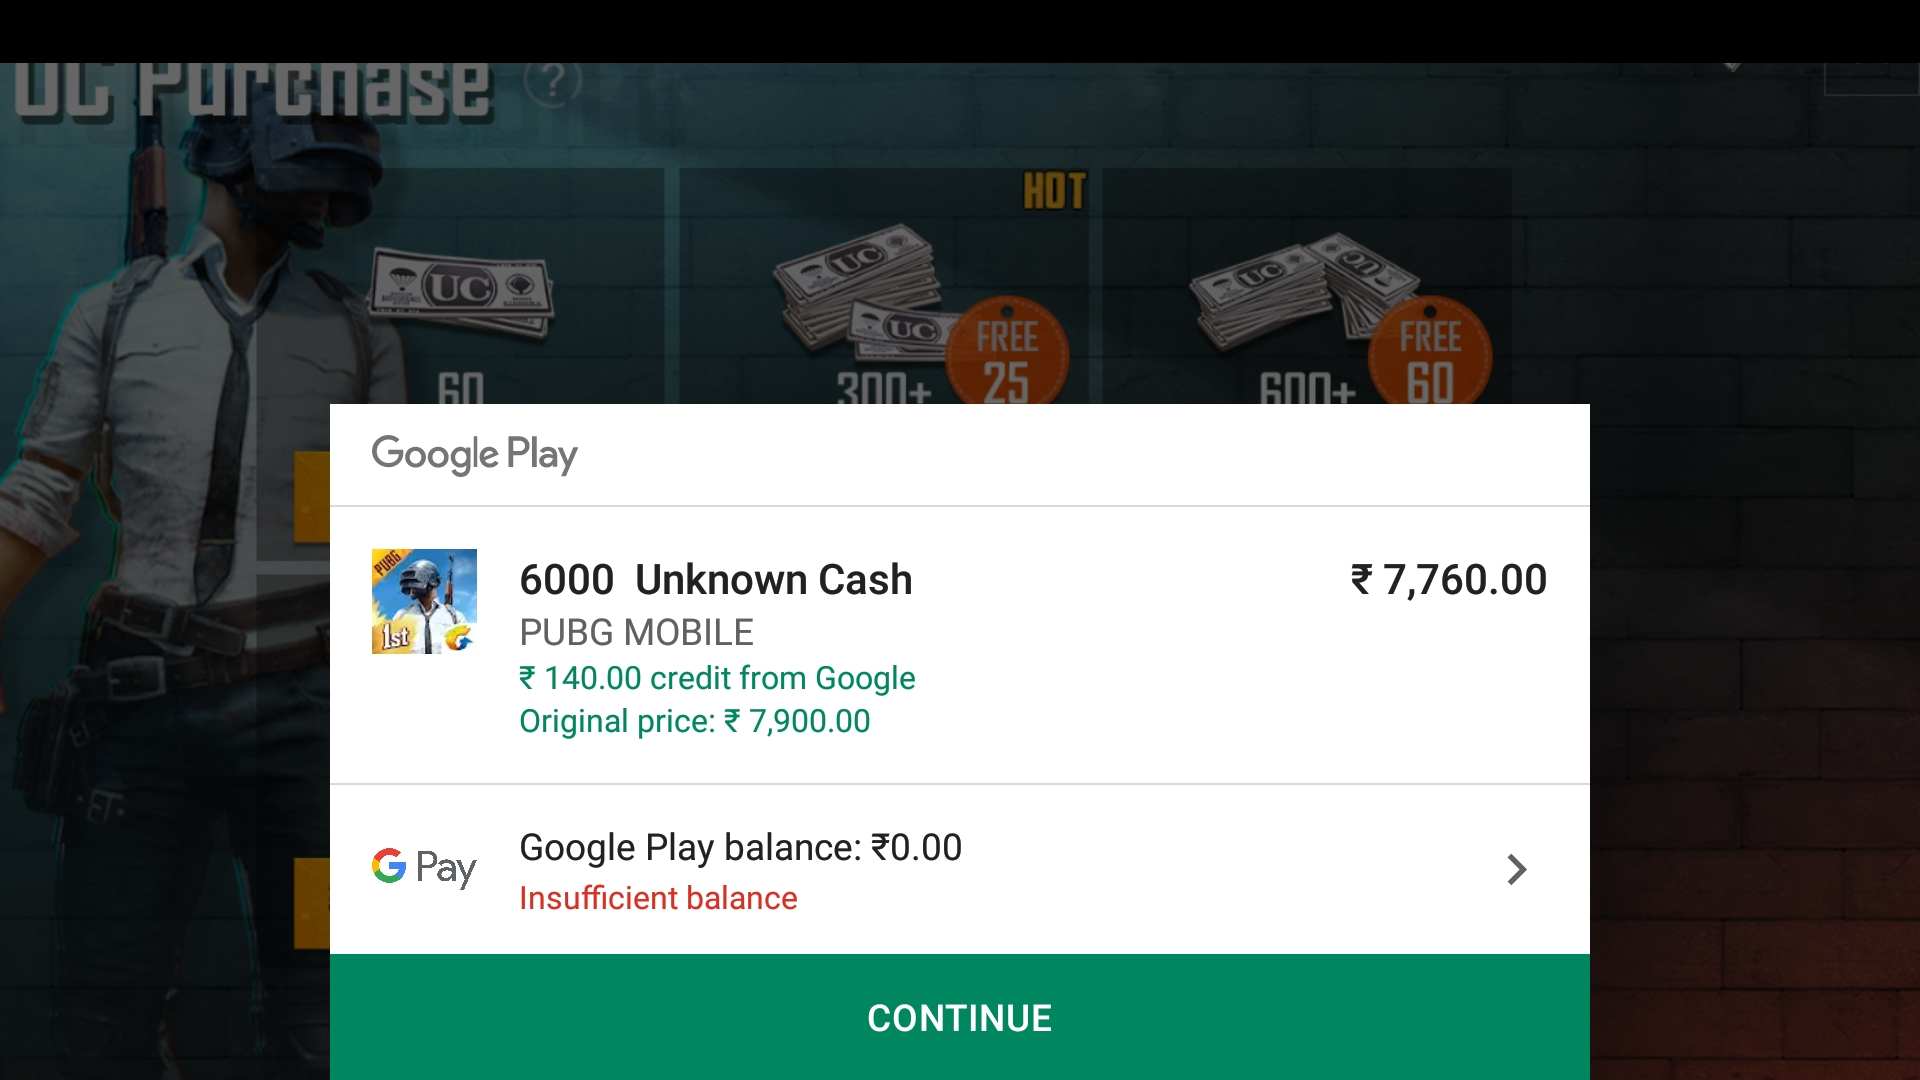 Trick to get PUBG UC 6000 + 2100 for free | DesiDime